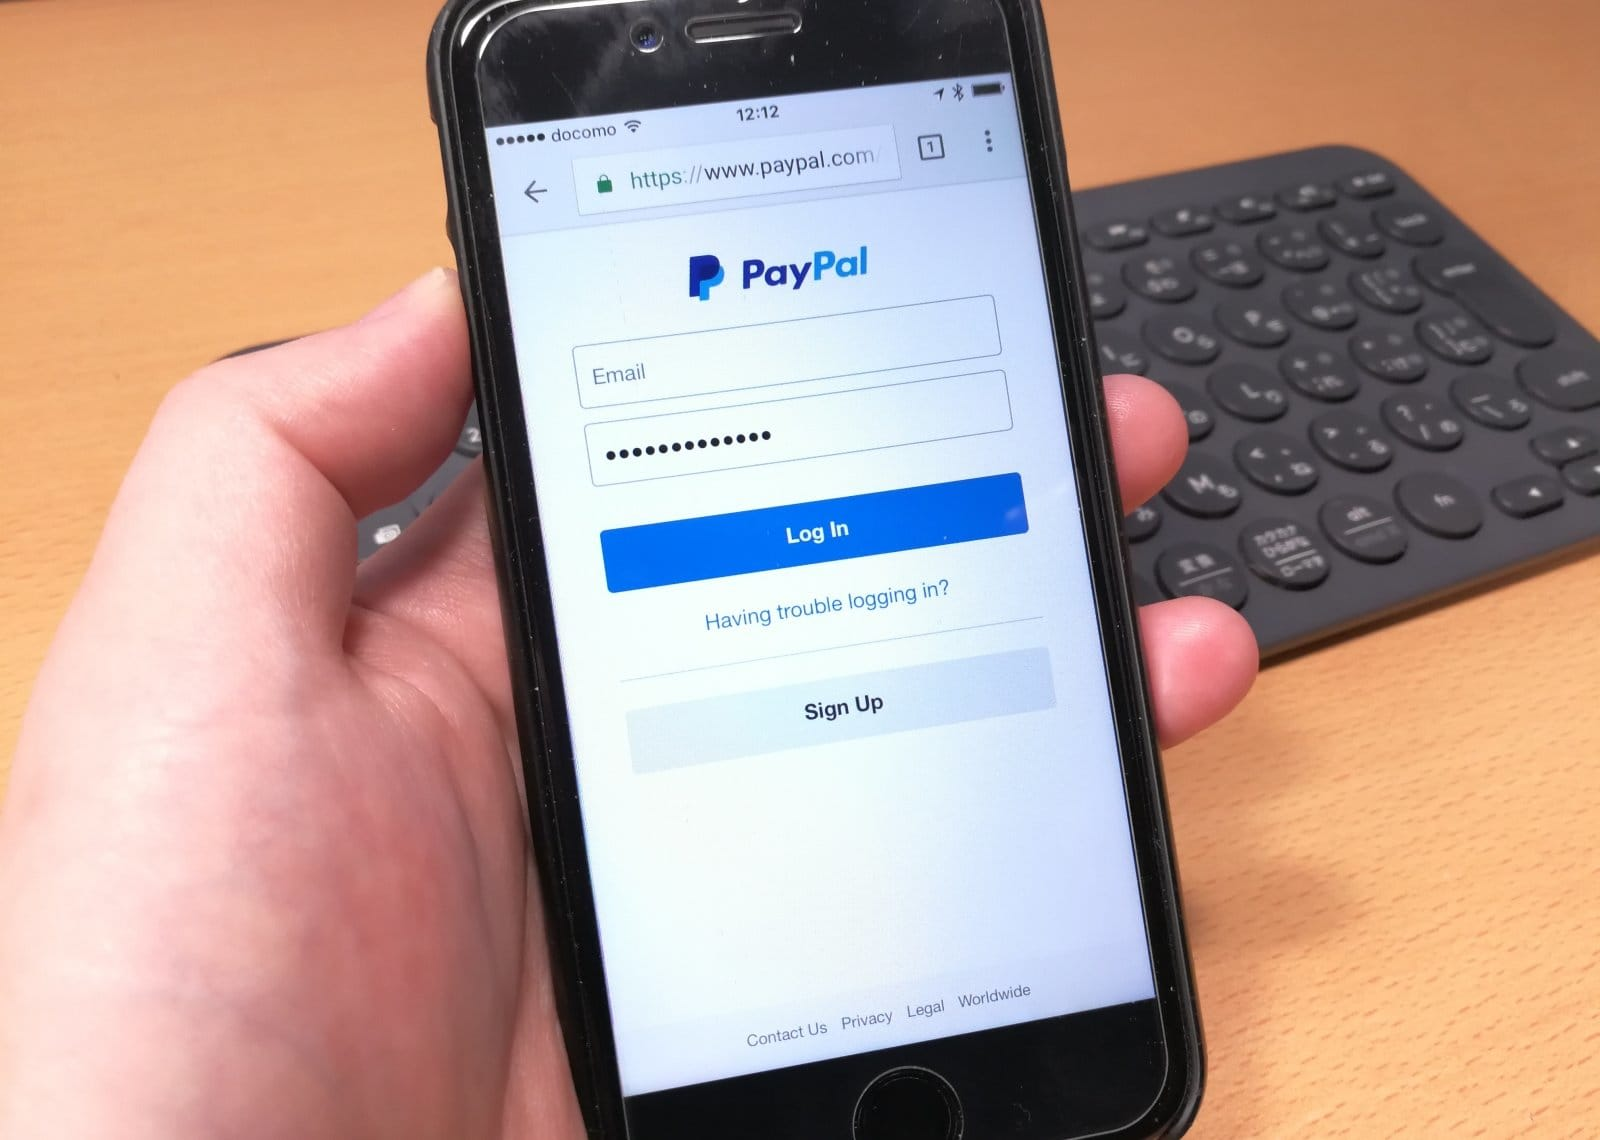 Paypal Owned Mobile Payment Venmo Opened Up Third Party Support Last Year In An Attempt To Capture More Money Via Merchant Transactions